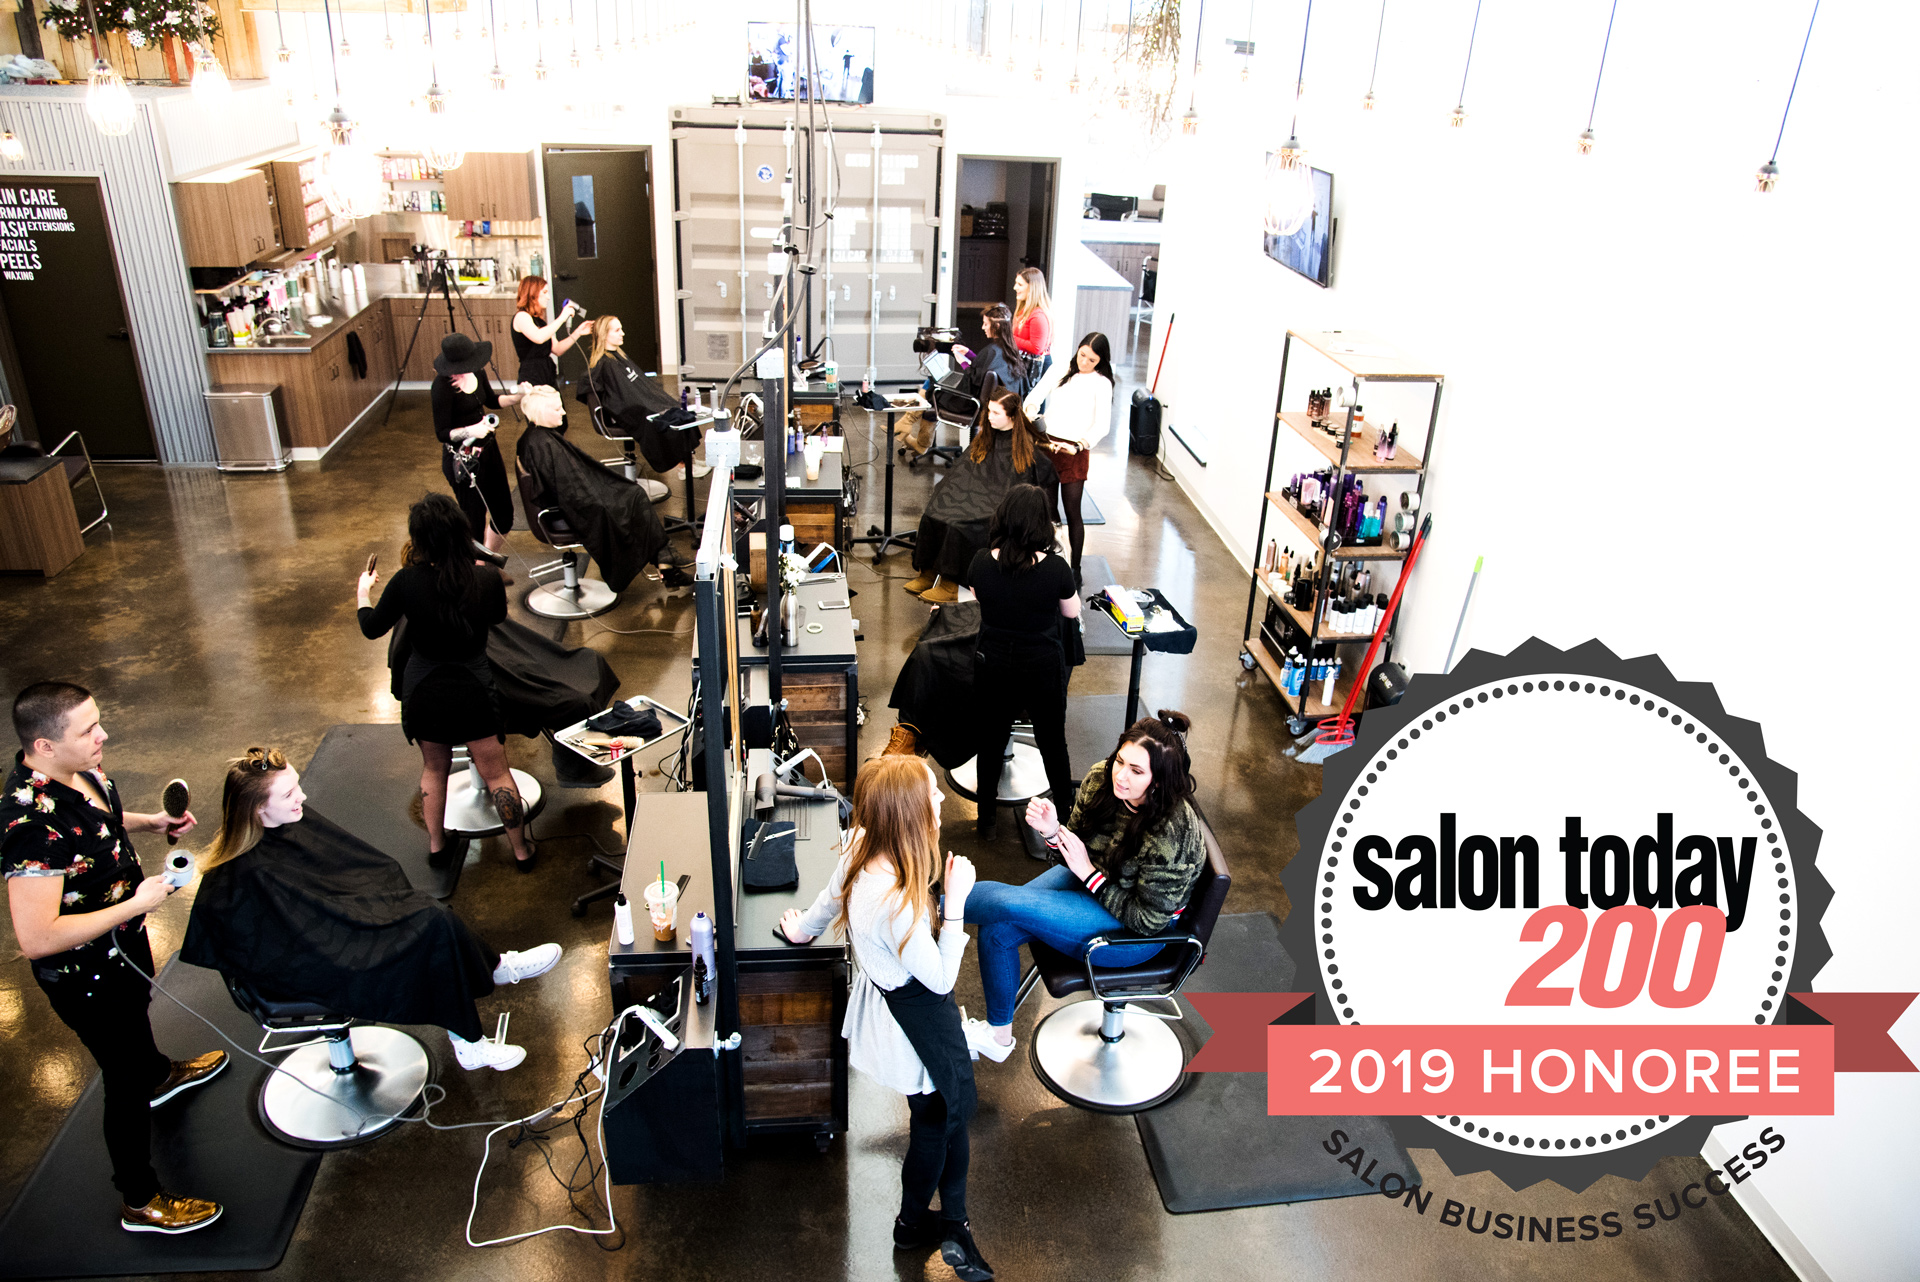 A YEAR OF THREE - 3 YEARS IN OUR NEW SPACE // 3 CONSECUTIVE YEARS WINNING SALON 200 AWARDS